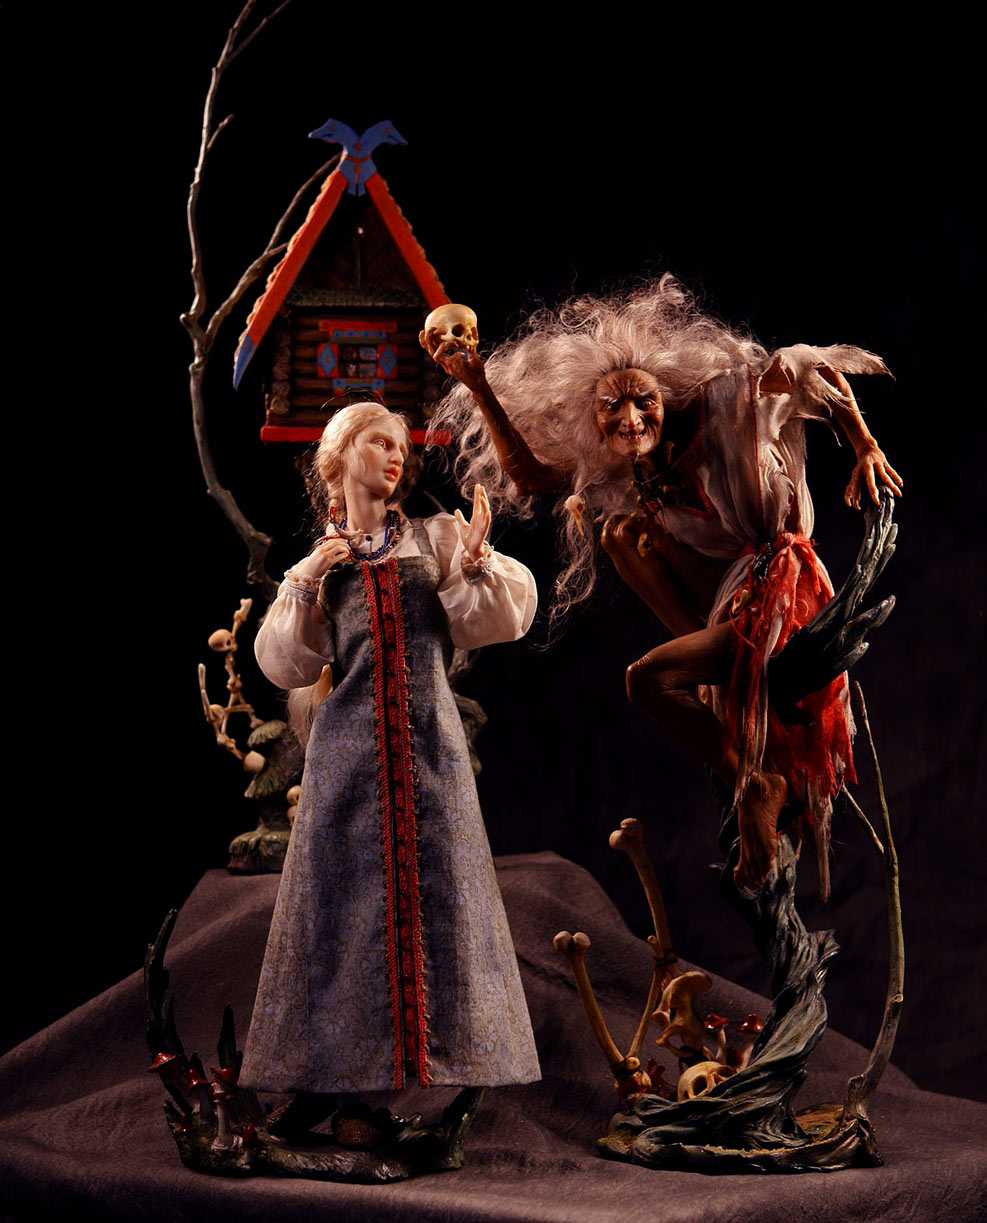 Baba Yaga and Vasilisa, with Hut. Dolls in Kato Polyclay